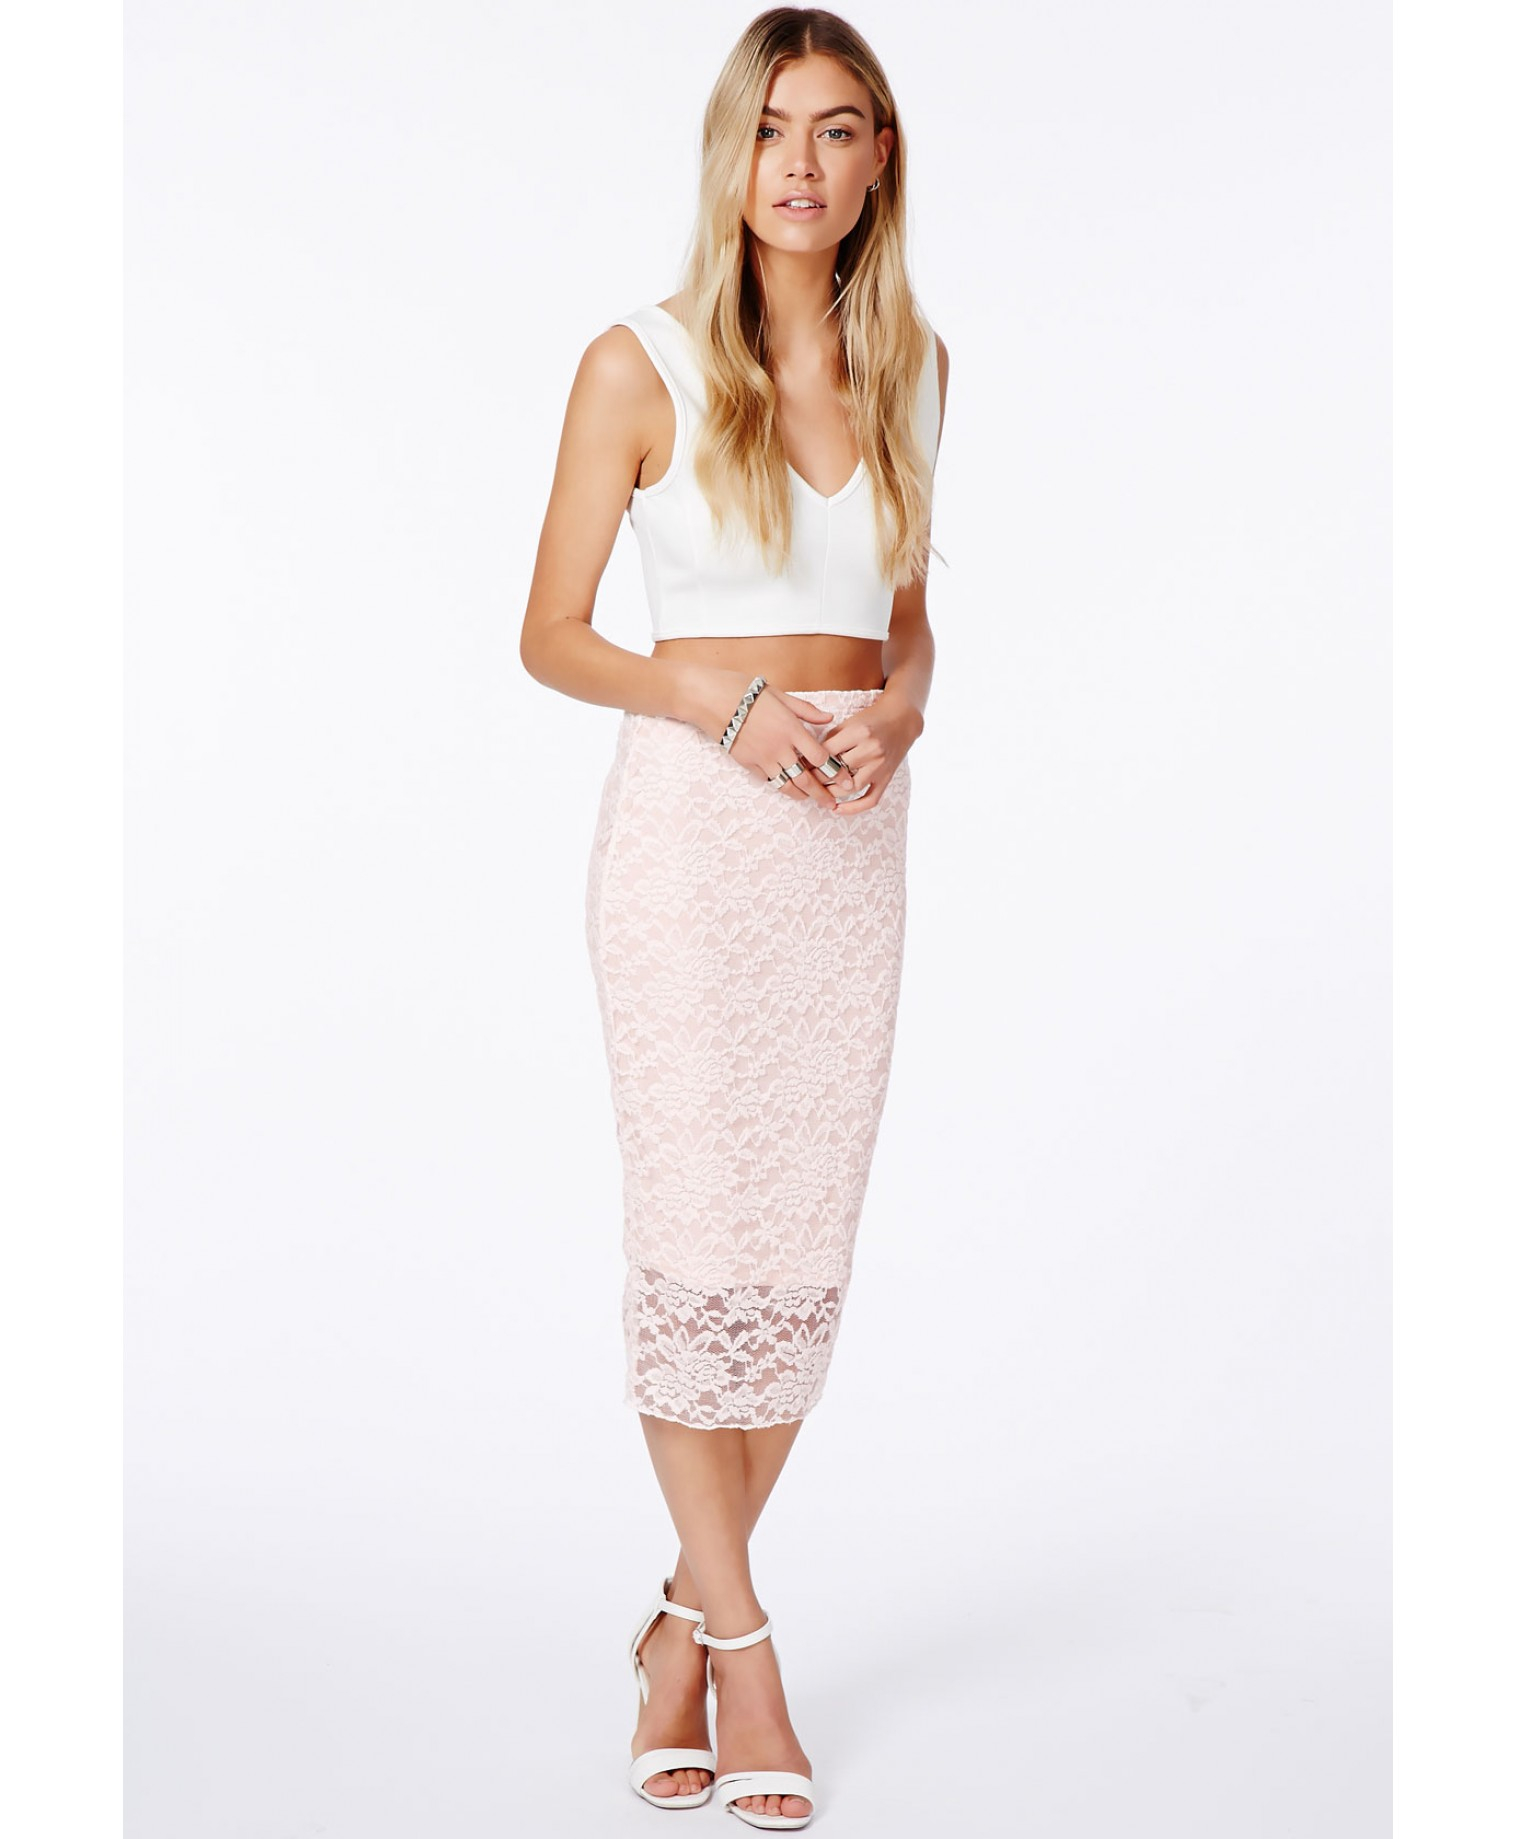 f7477cab9 Missguided Graciana Nude Lace Midi Skirt in Pink - Lyst